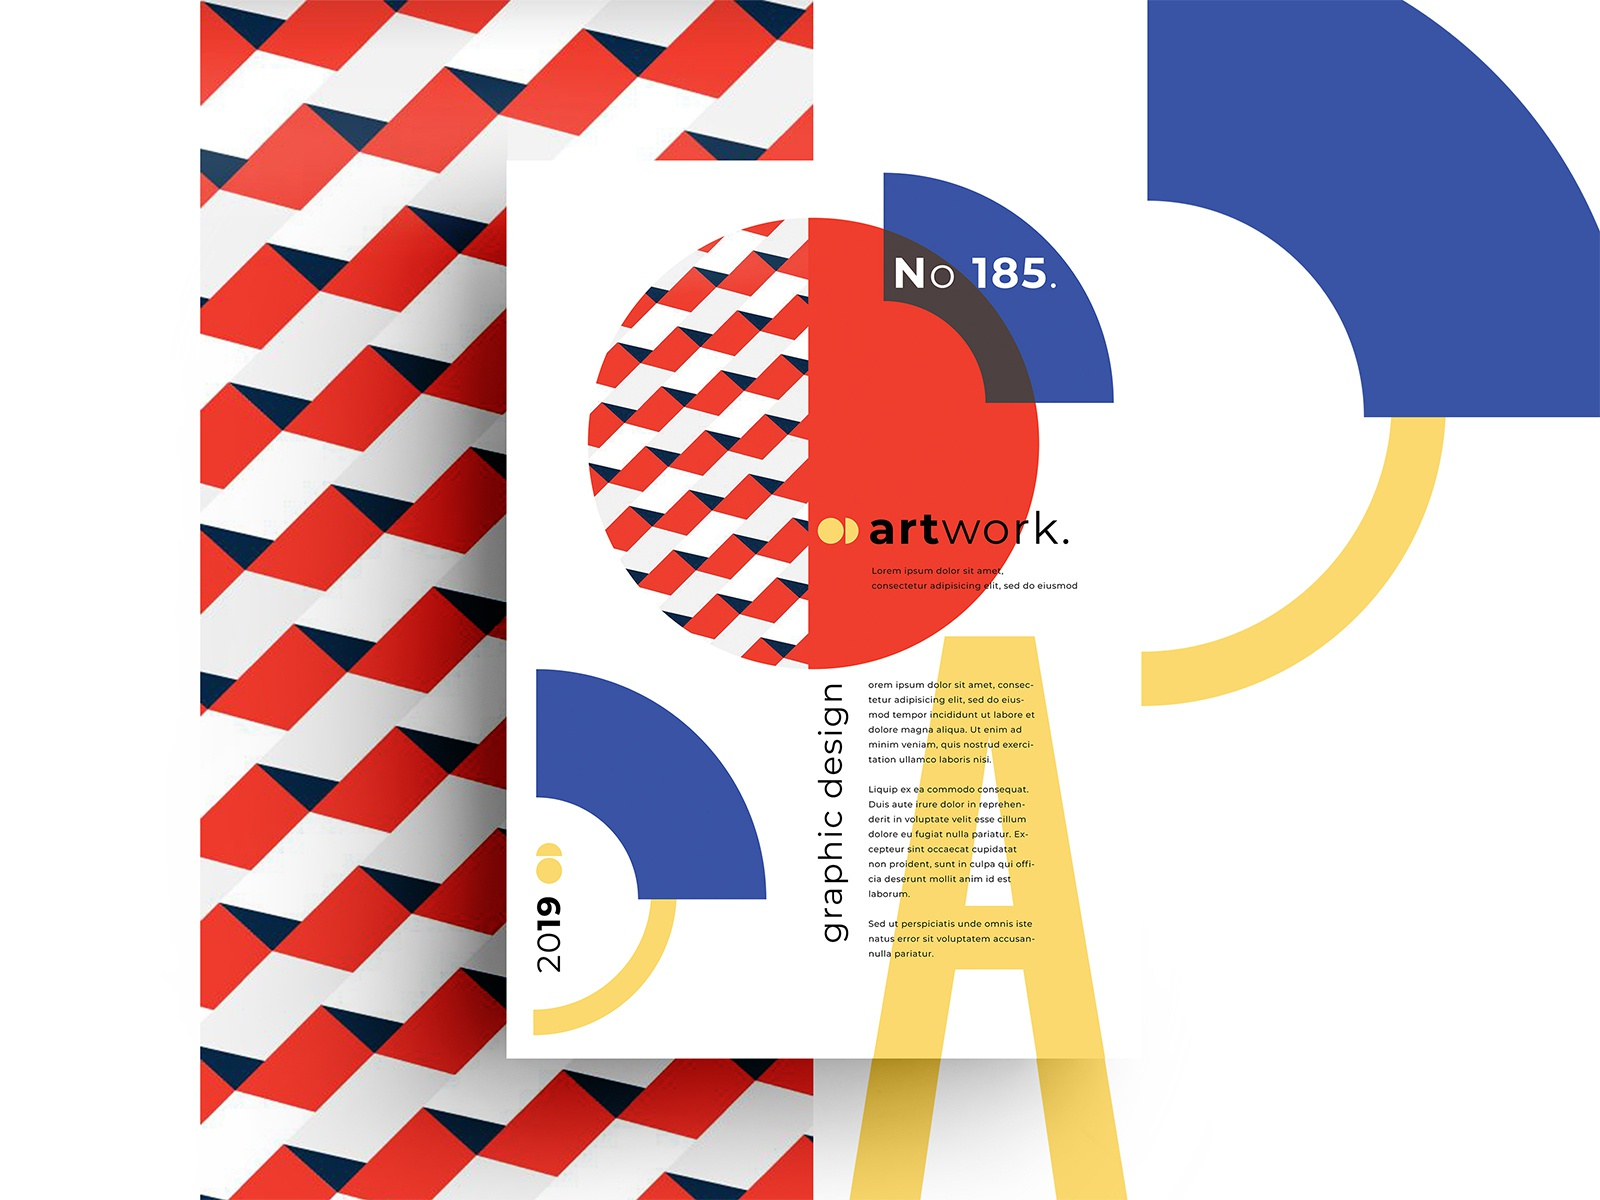 Branding by matthieumartigny for Wantedesign on Dribbble